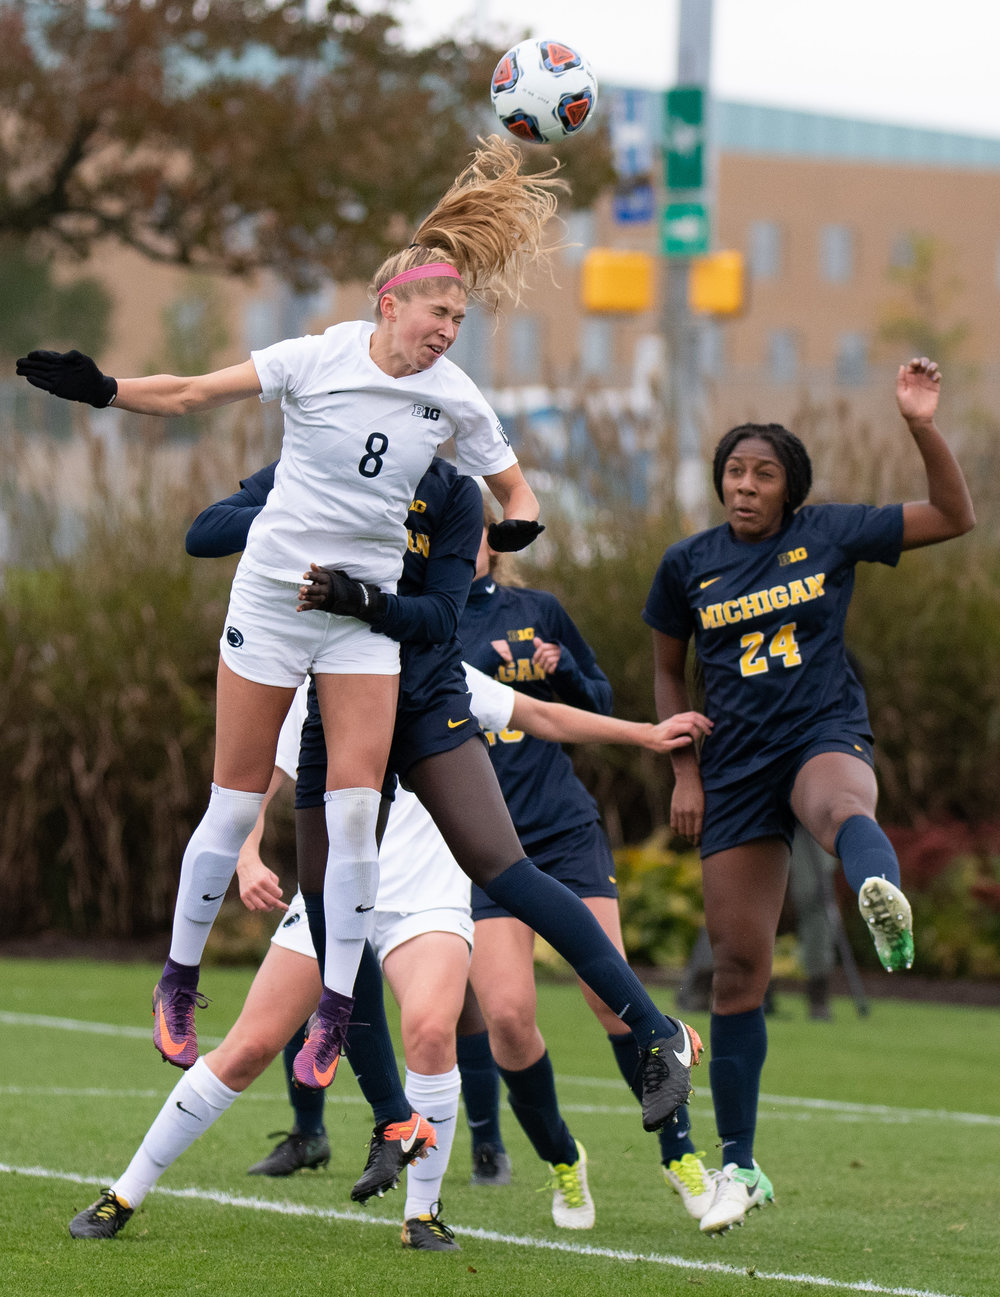 Forward Kristin Schnurr (8) heads the ball during the Big Ten tournament game against Michigan at Jeffrey Field on Sunday, Oct. 28, 2018. The Nittany Lions defeat Michigan 1-0 and advance to the semifinals of the Big Ten tournament. | Photo by: Noah Riffe